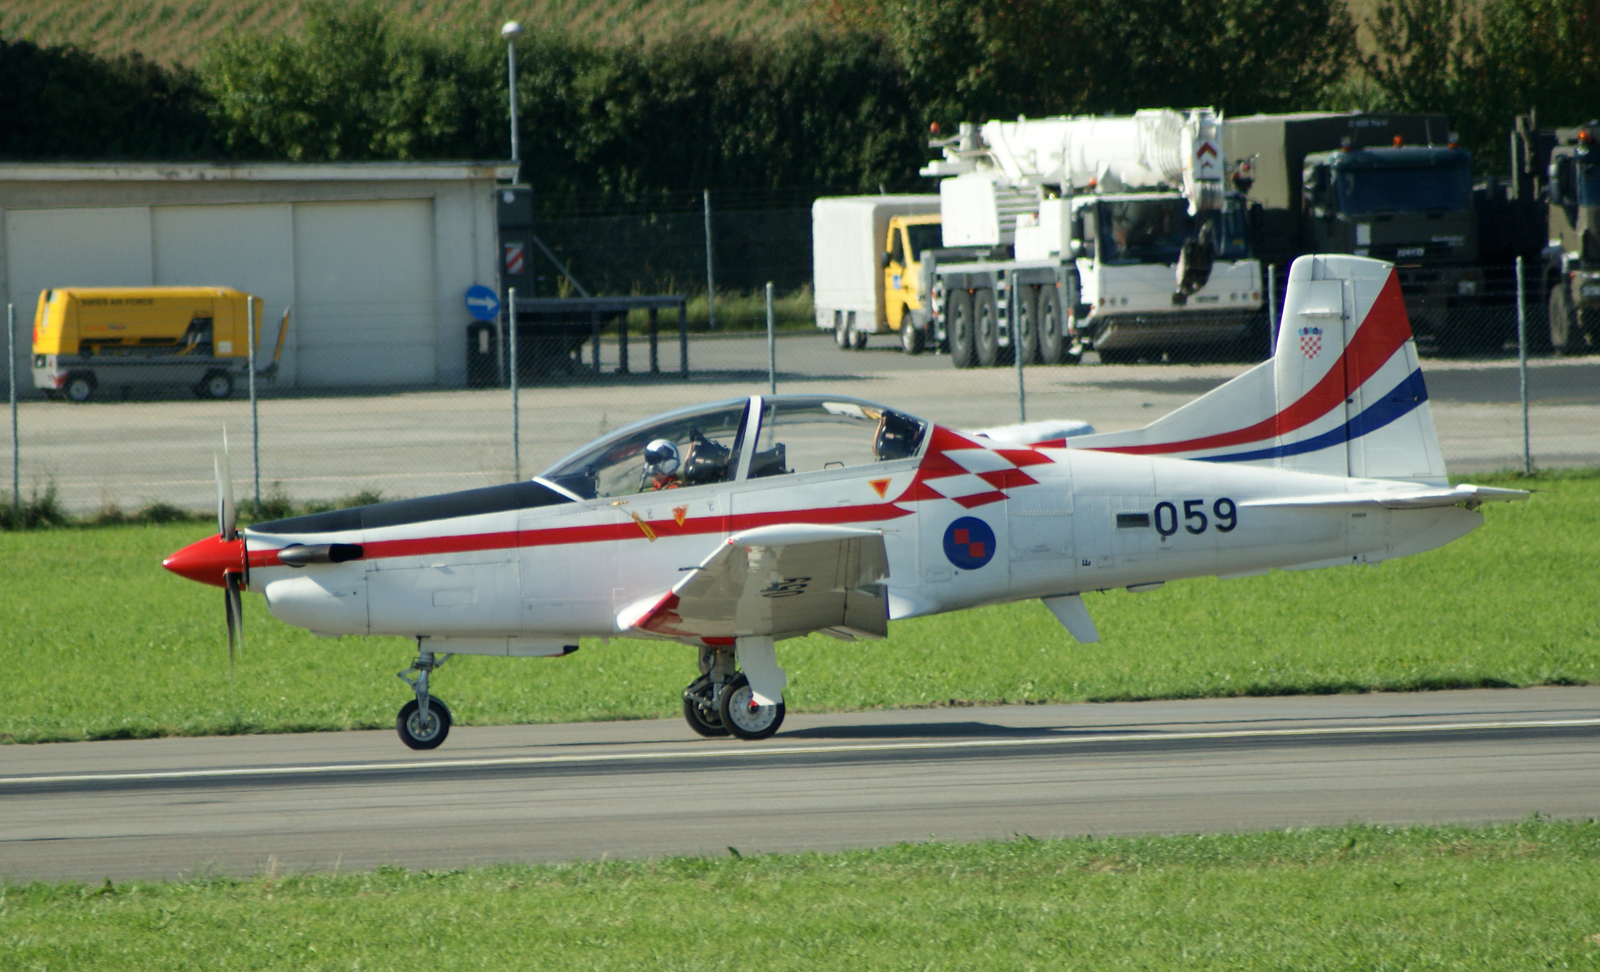 Pilatus PC-9M 059 Croatian Air Force